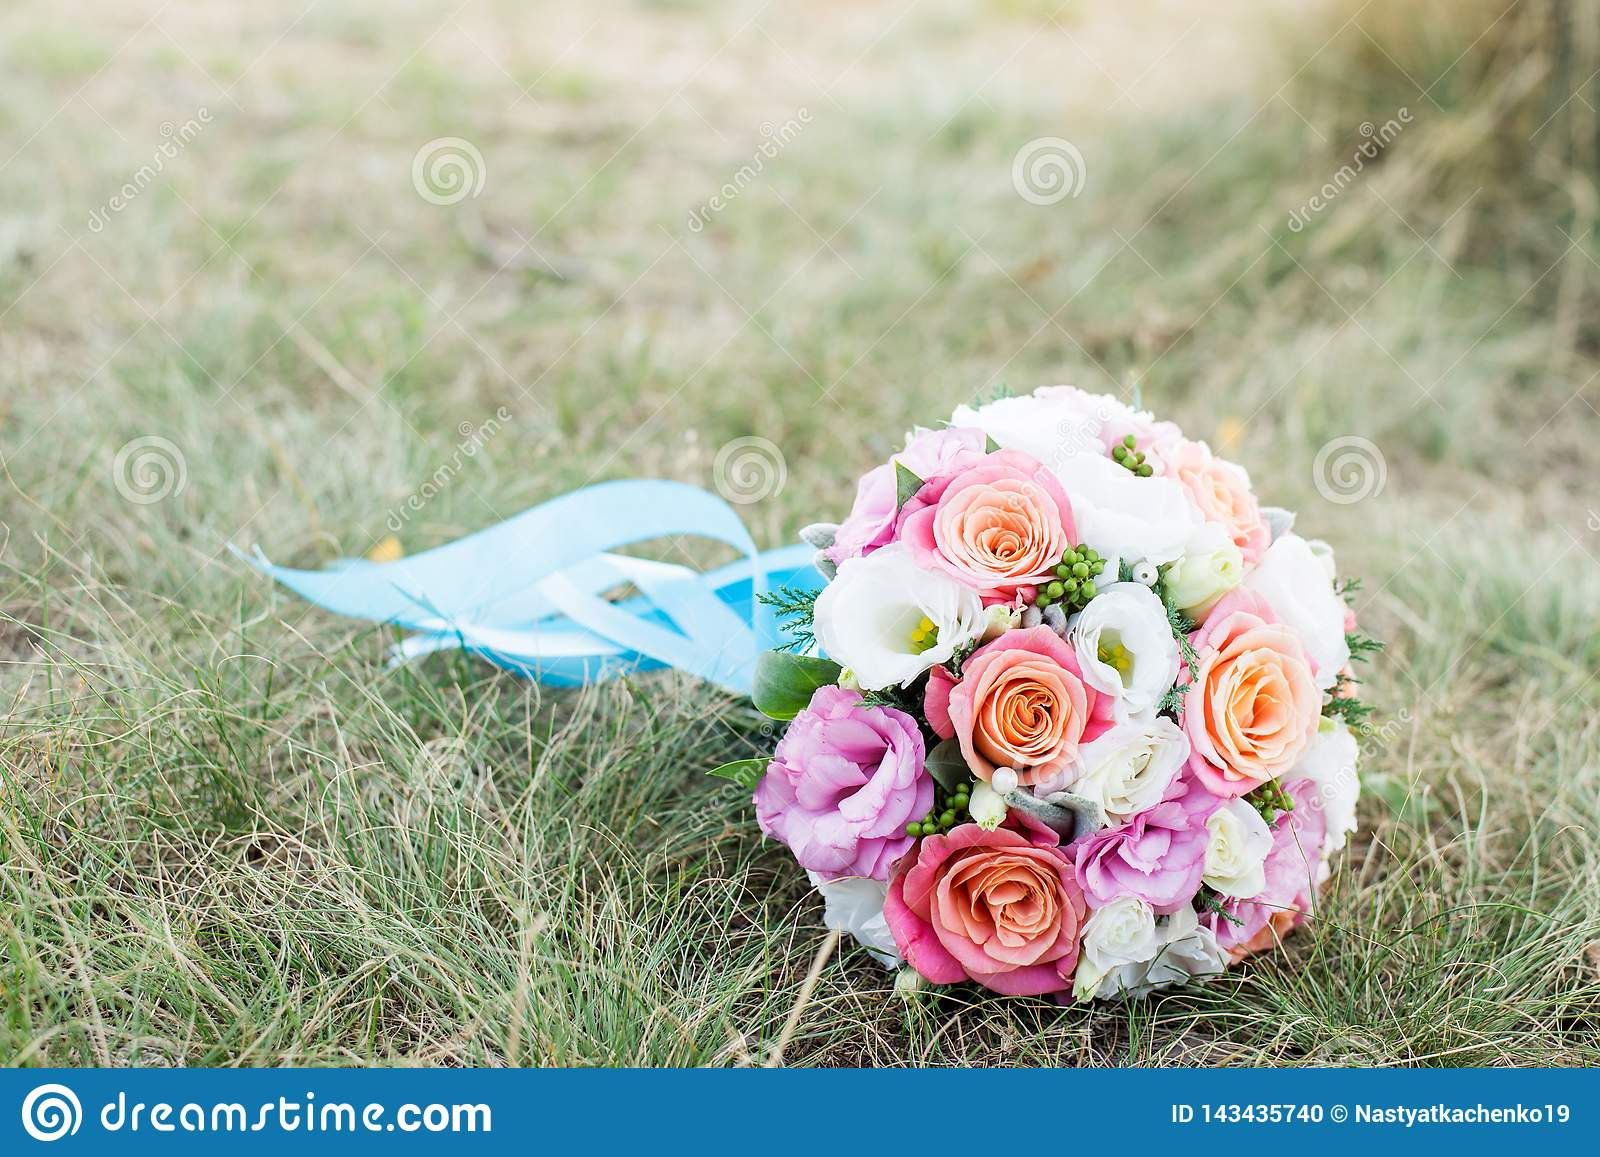 Wedding background. The bride`s bouquet with pink and white flowers on the grass. declaration of love. Wedding card, day details